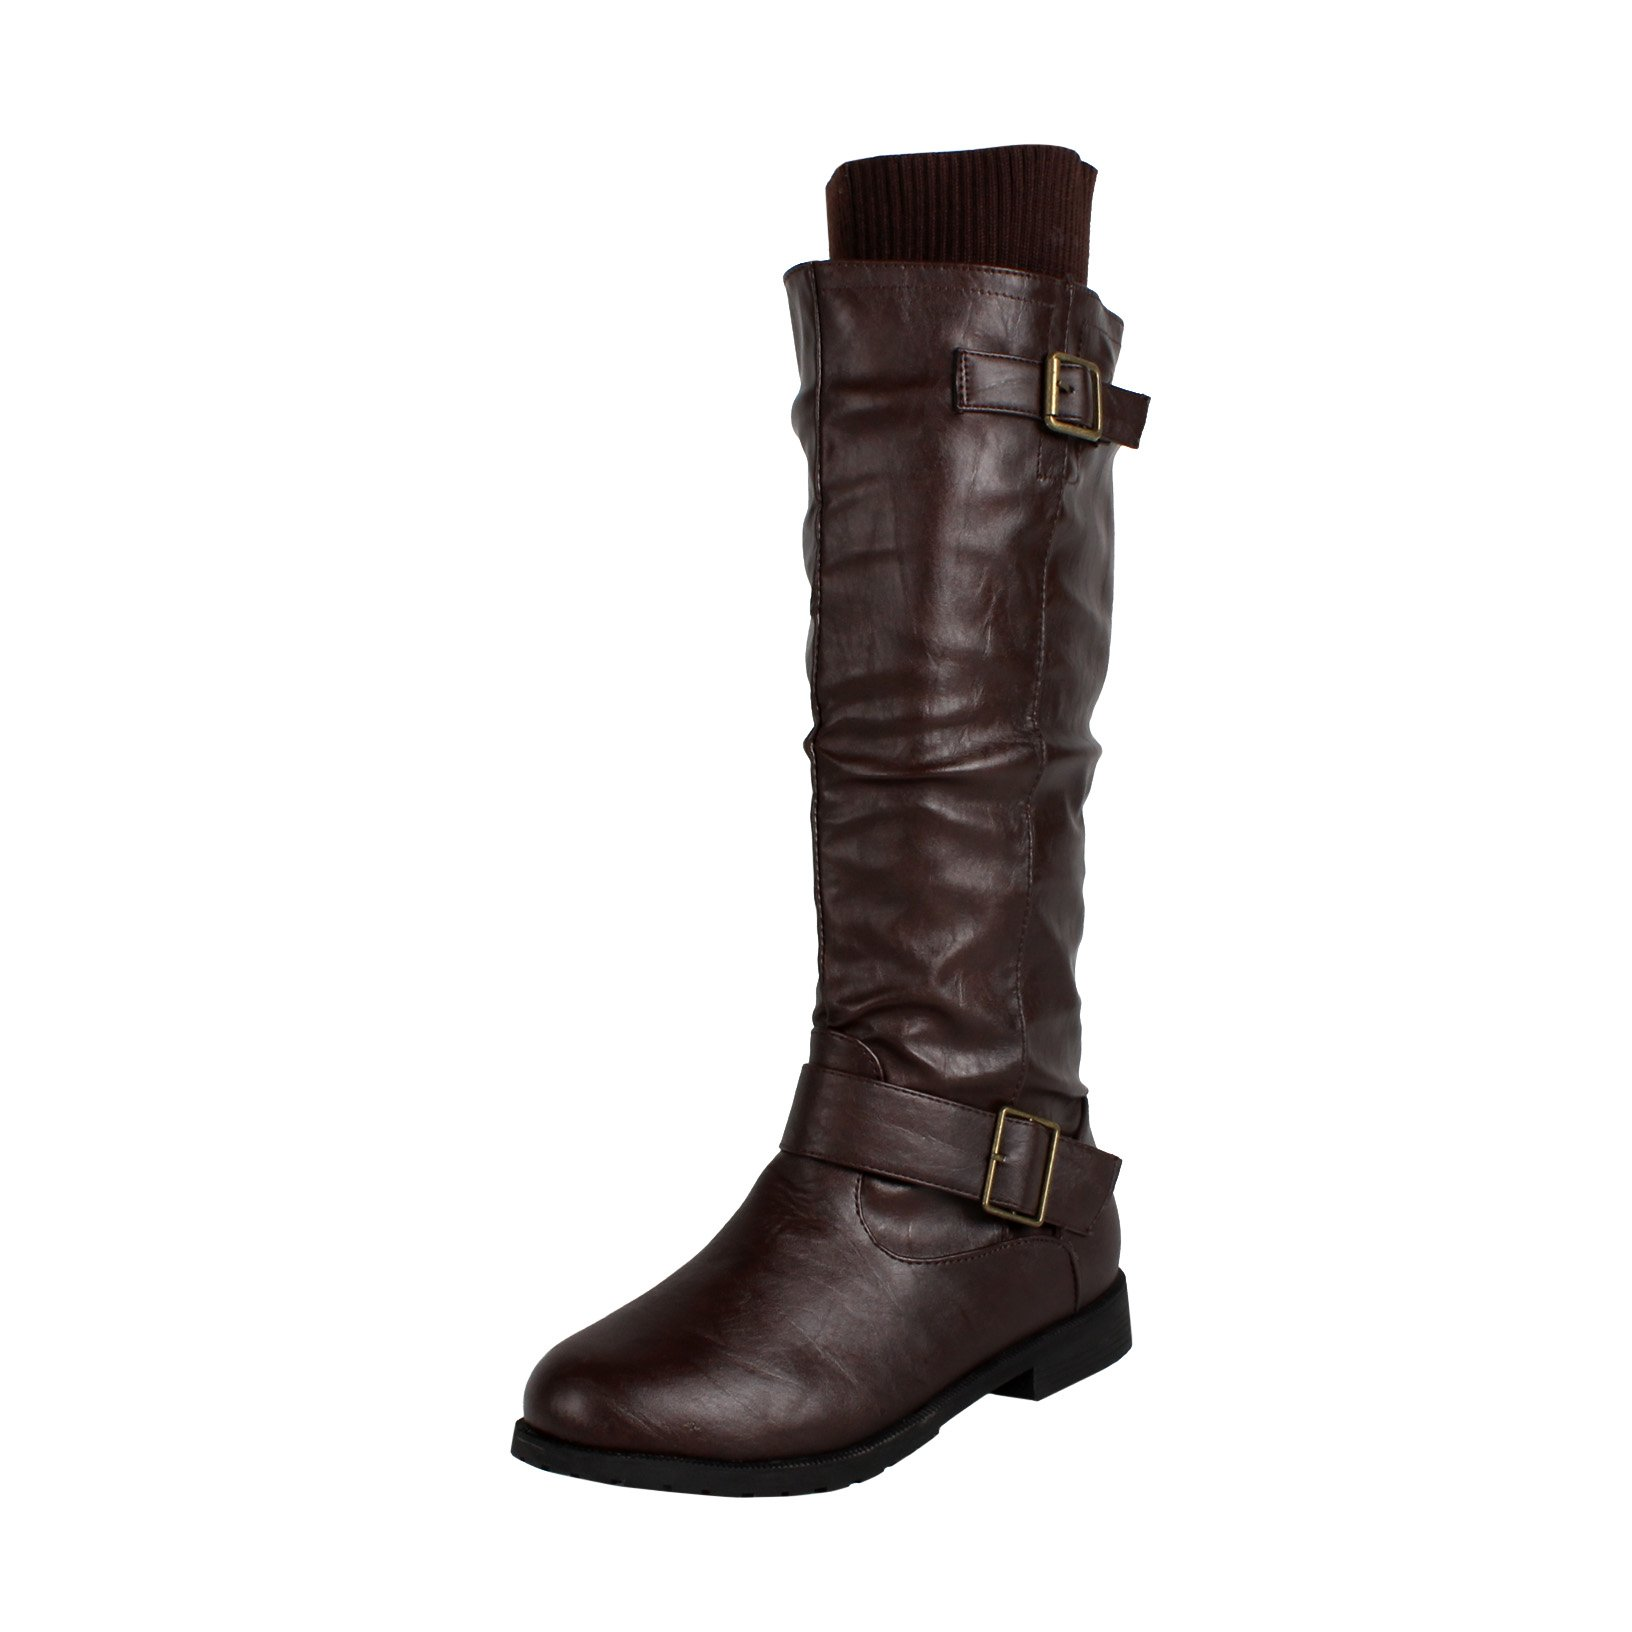 West Blvd Osakav2.0 Riding Boots, Brown Pu, 7.5 by West Blvd